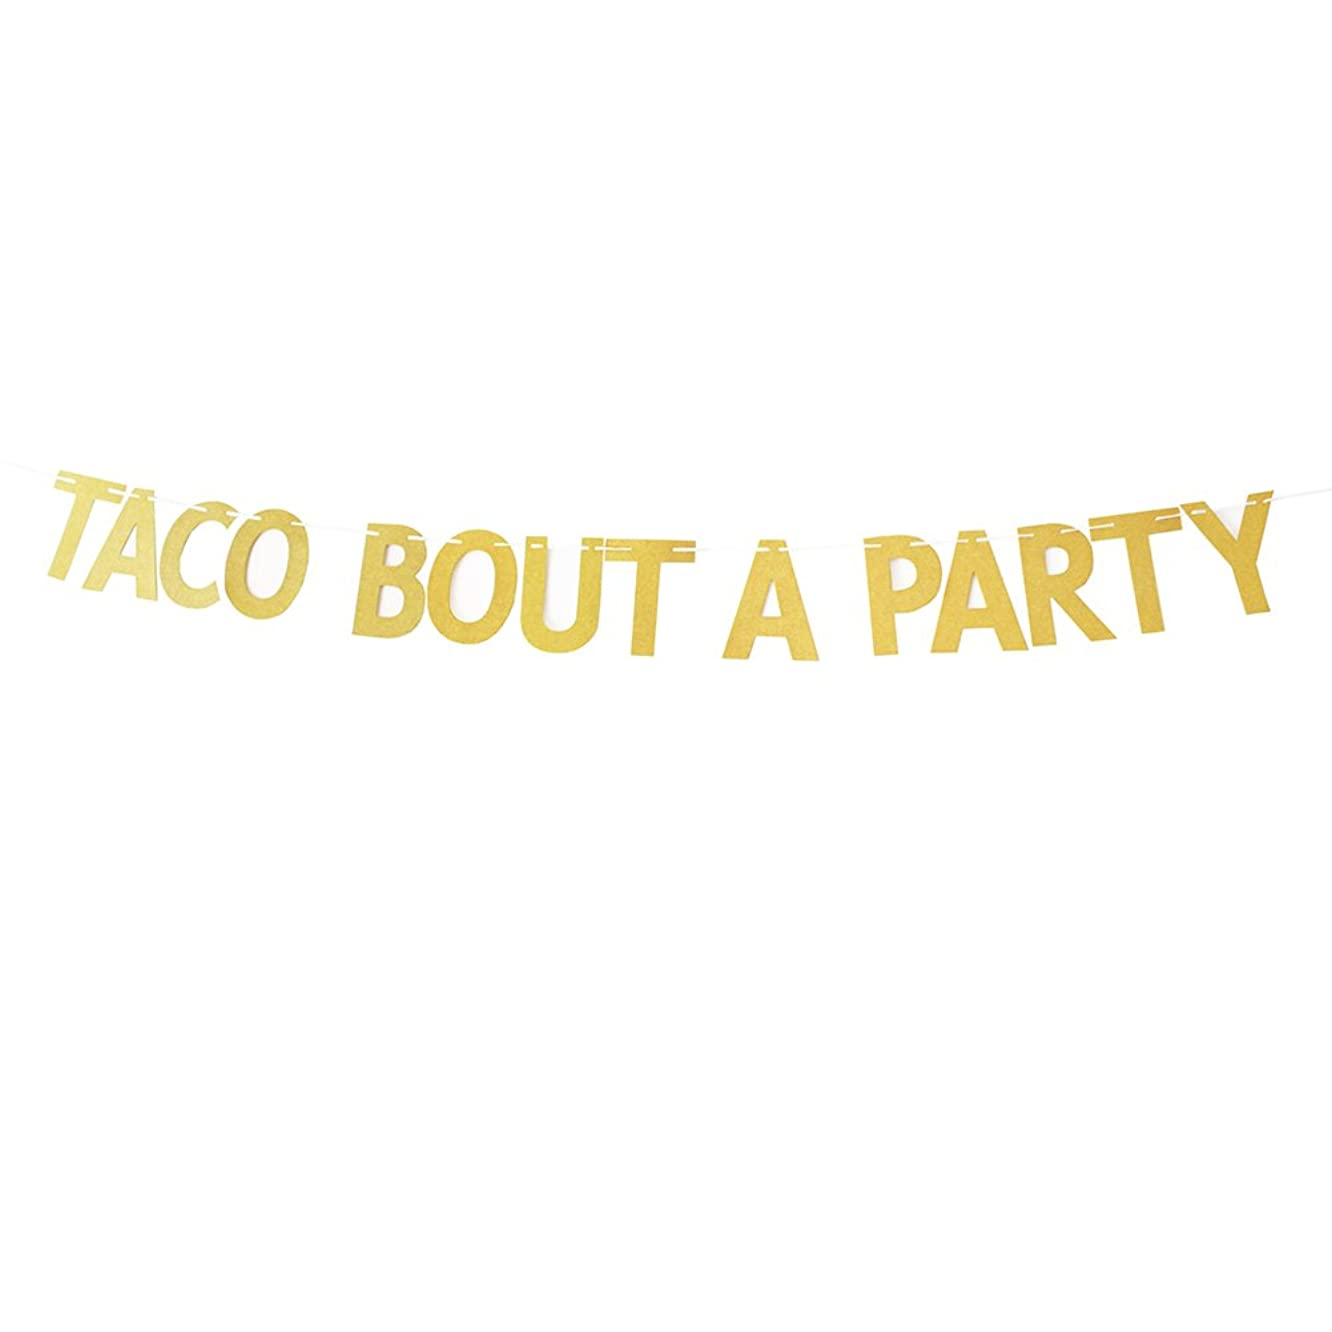 Gold Glitter Taco Bout A Party Banner Mexican Theme Party Decorations Bunting Photo Booth Props Signs Garland